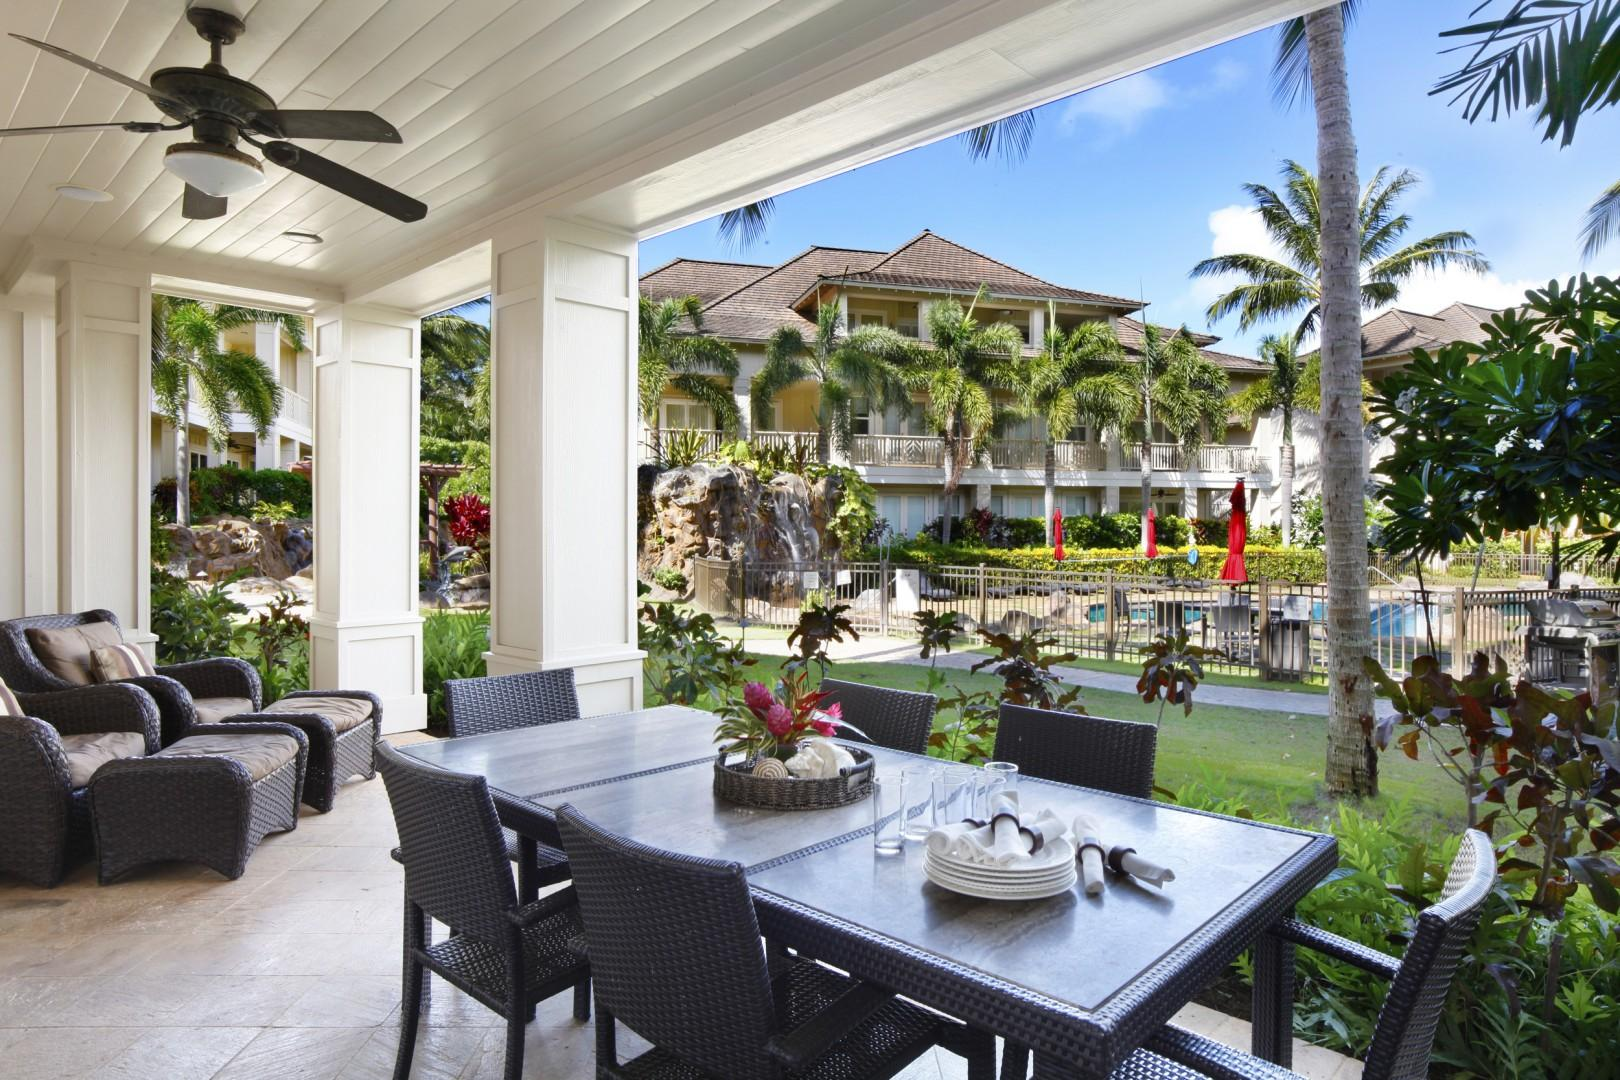 Lanai with pool and waterfall view.